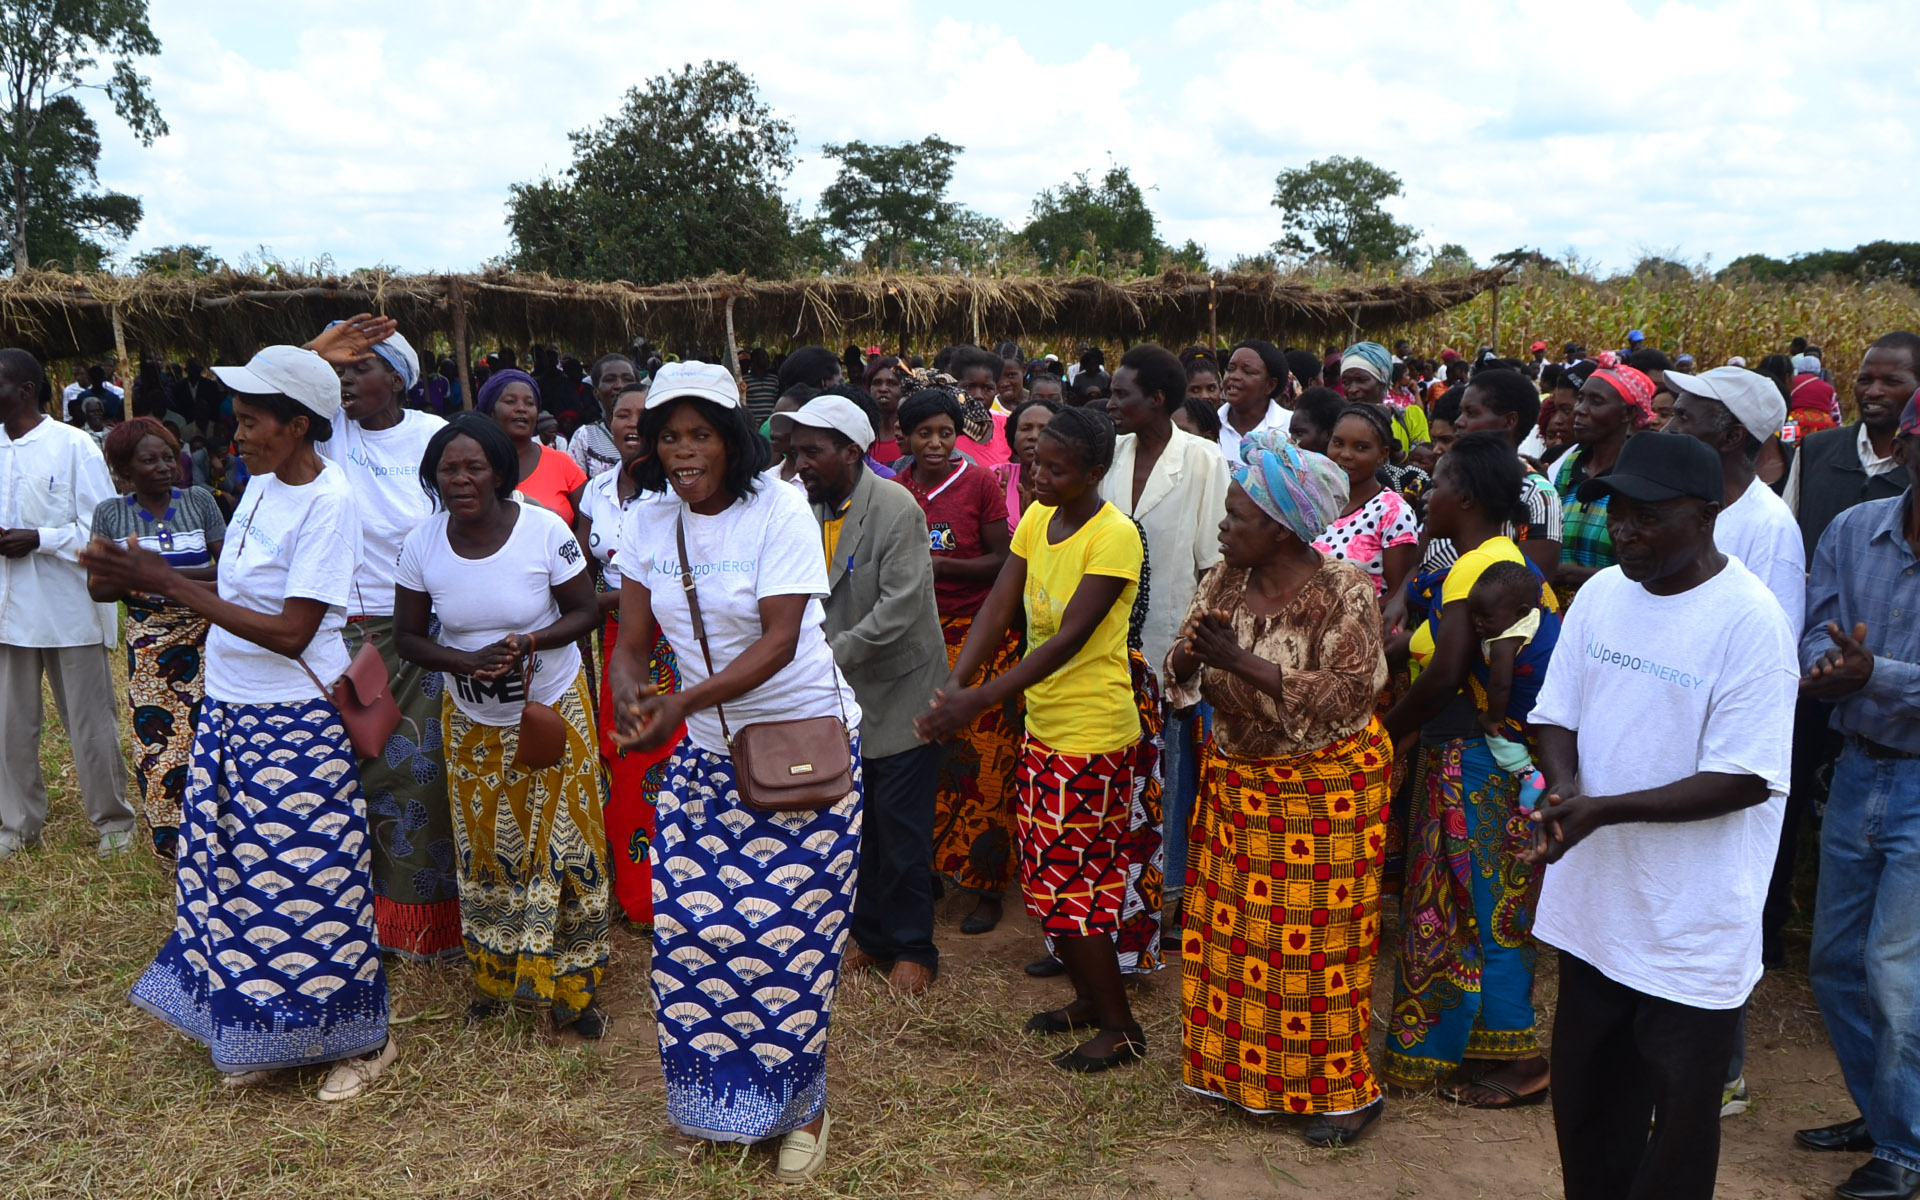 Villagers dance in celebration of the development of the wind farm.